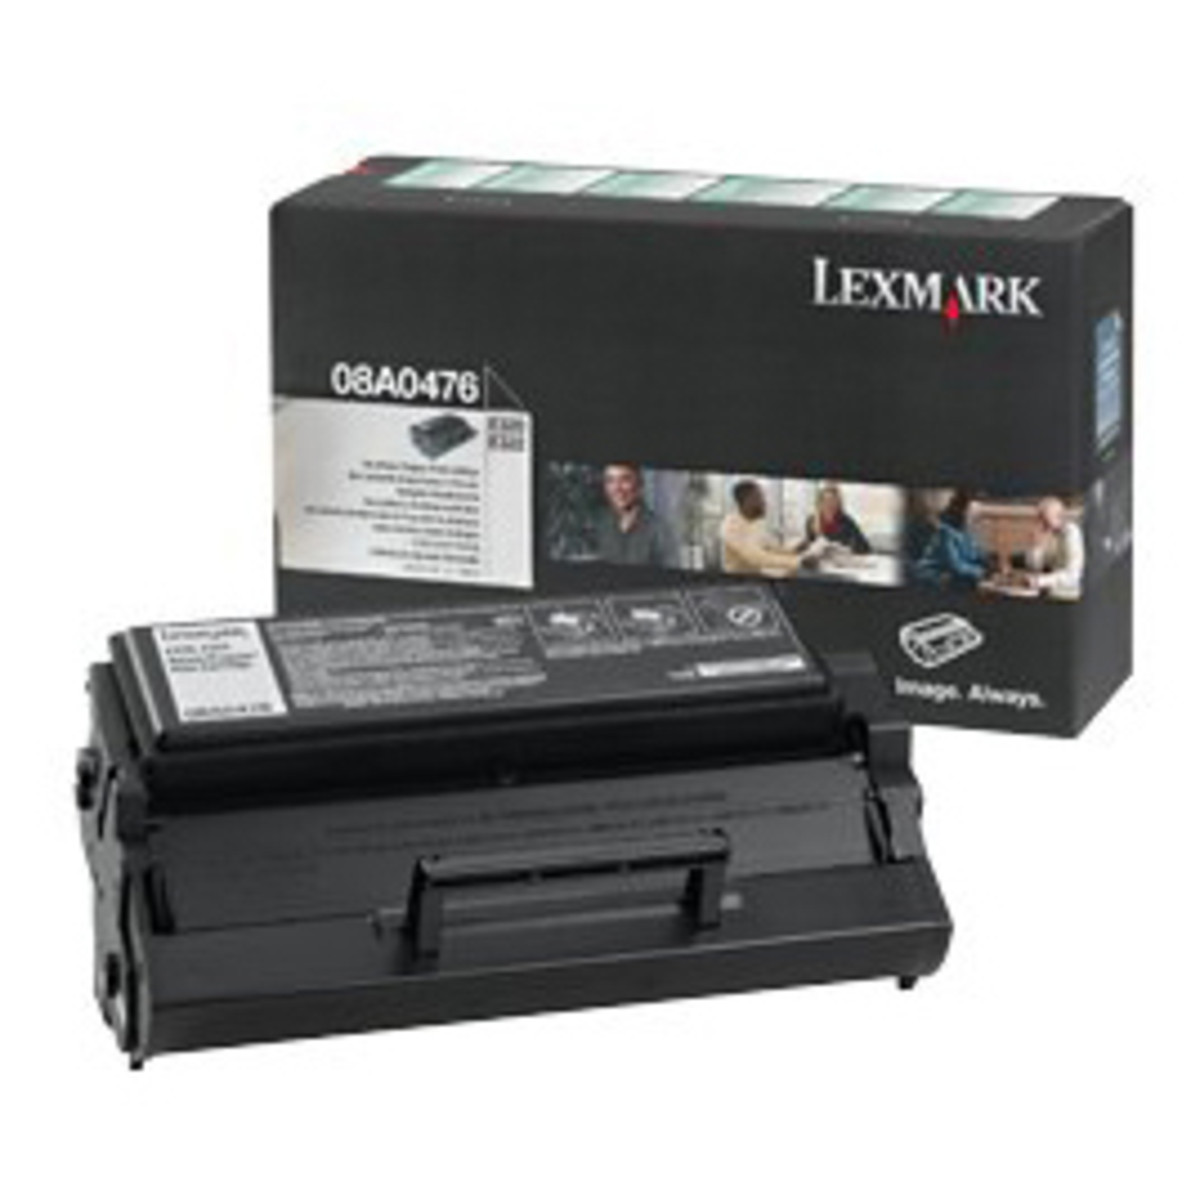 Lexmark 08A0476 Black Prebate Toner Cartridge